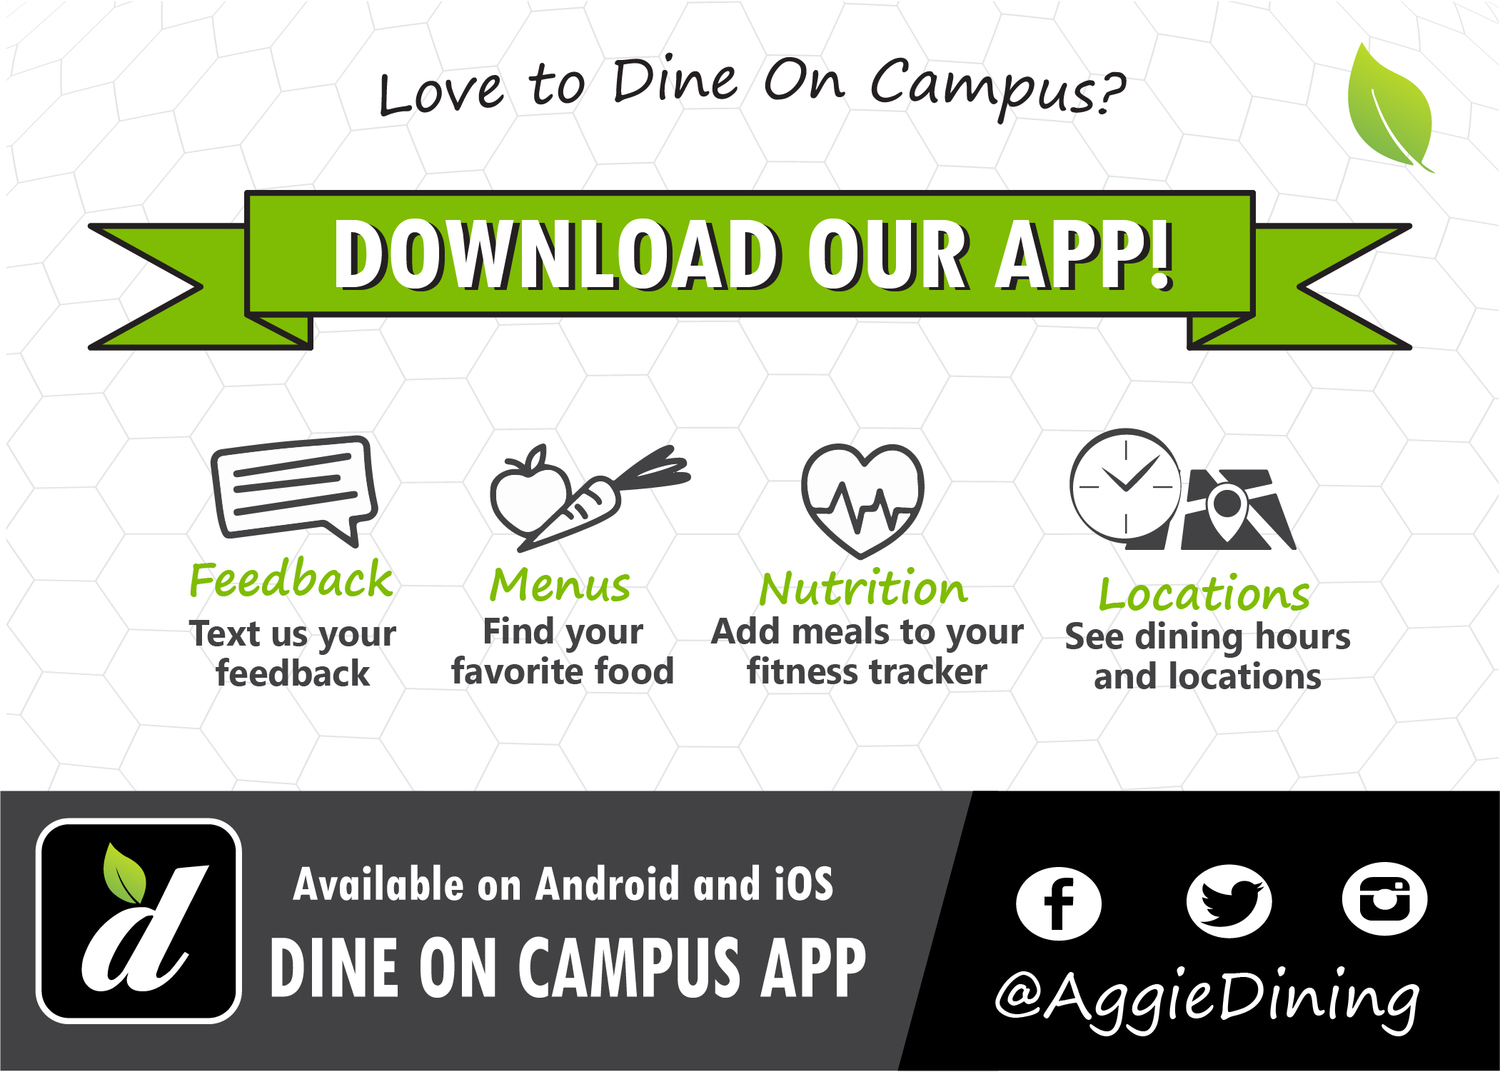 Dine On Campus at Texas A&M University || Dine on Campus App